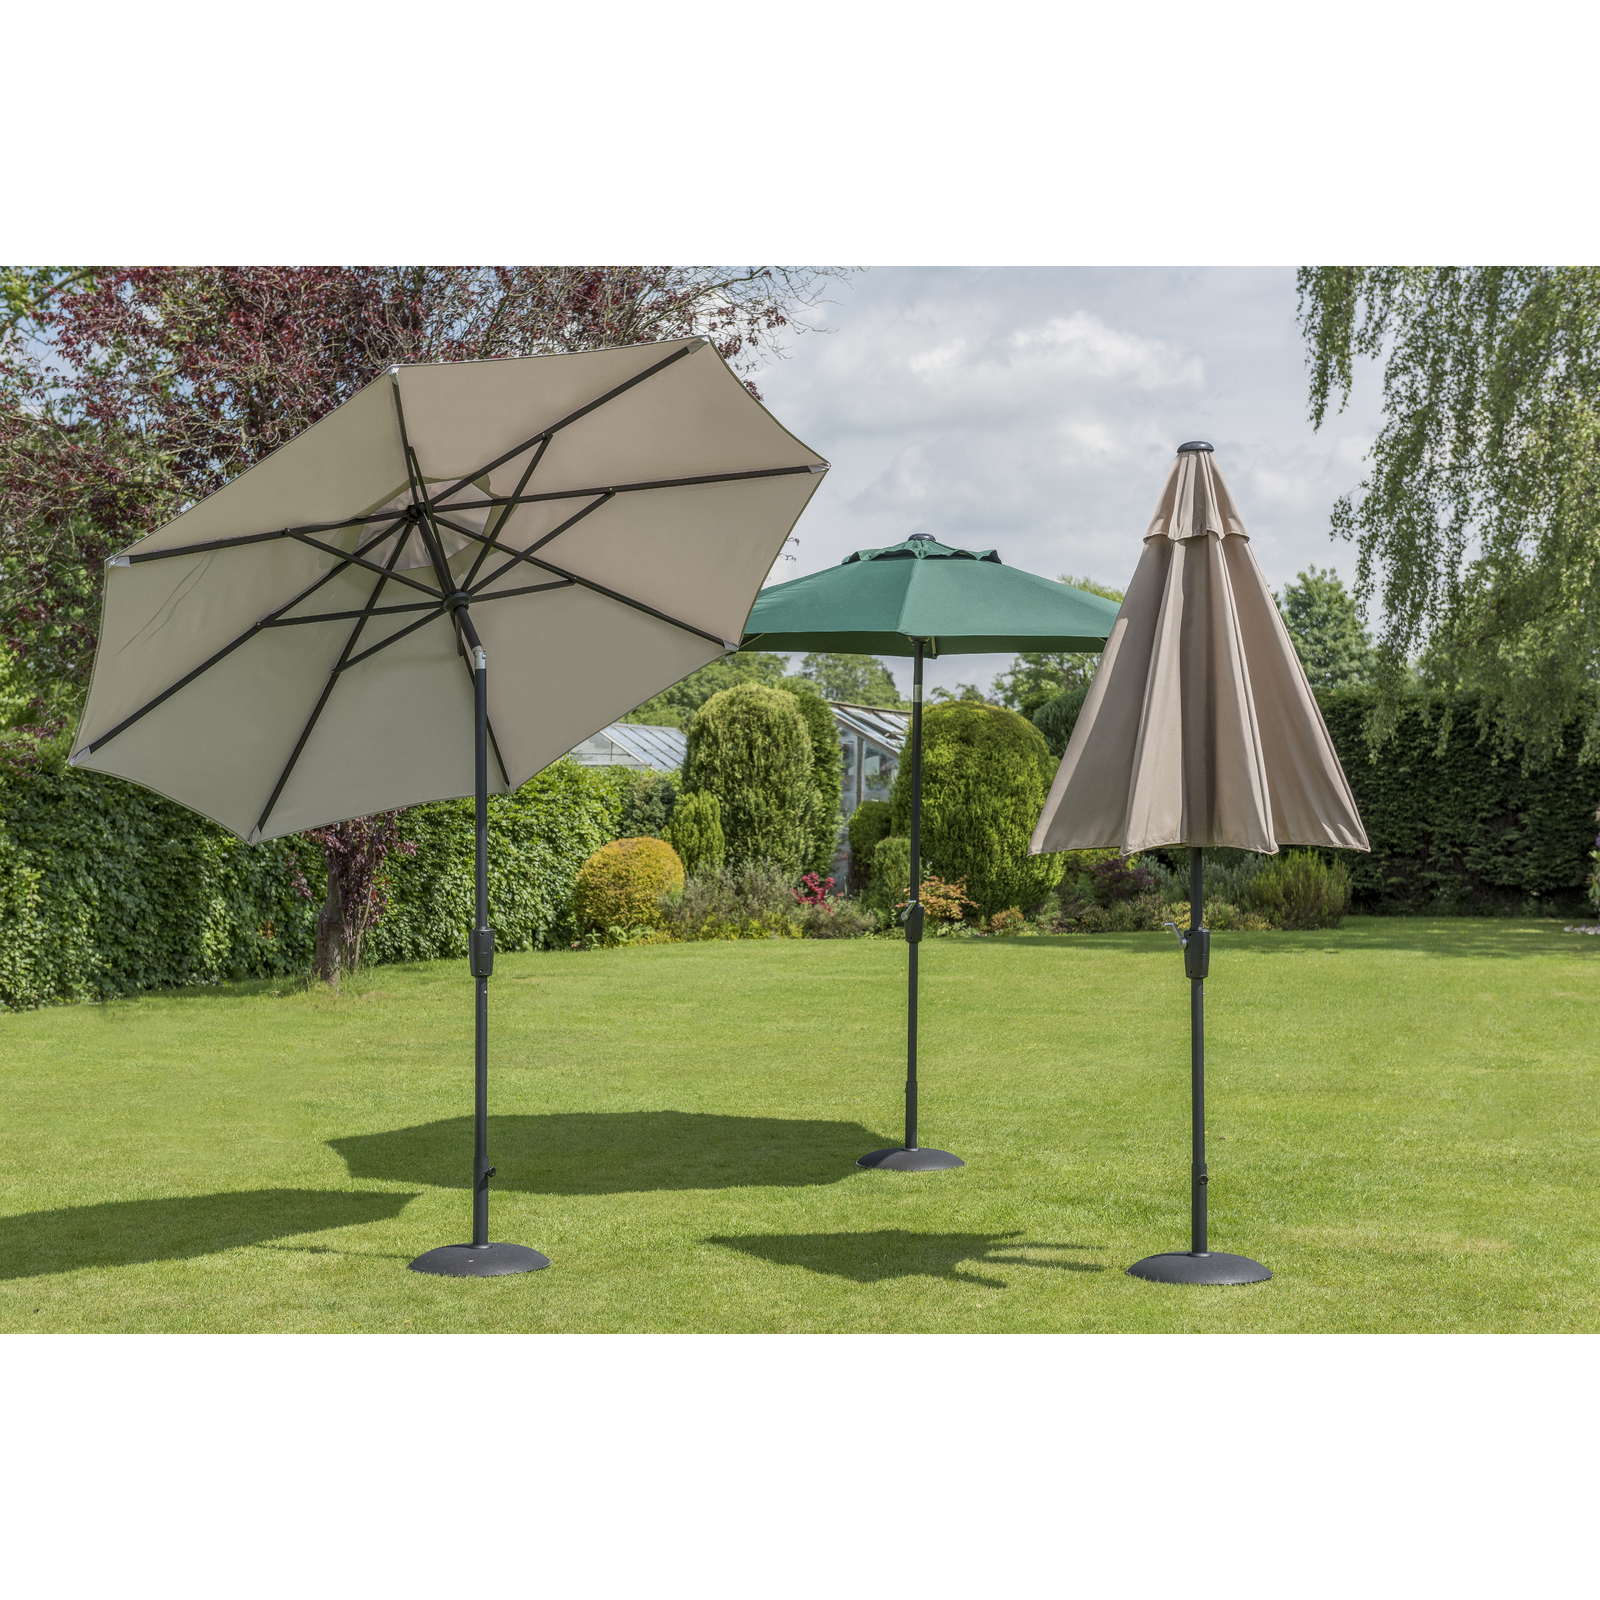 Garden Must Haves Elizabeth Green Parasol 3.0m